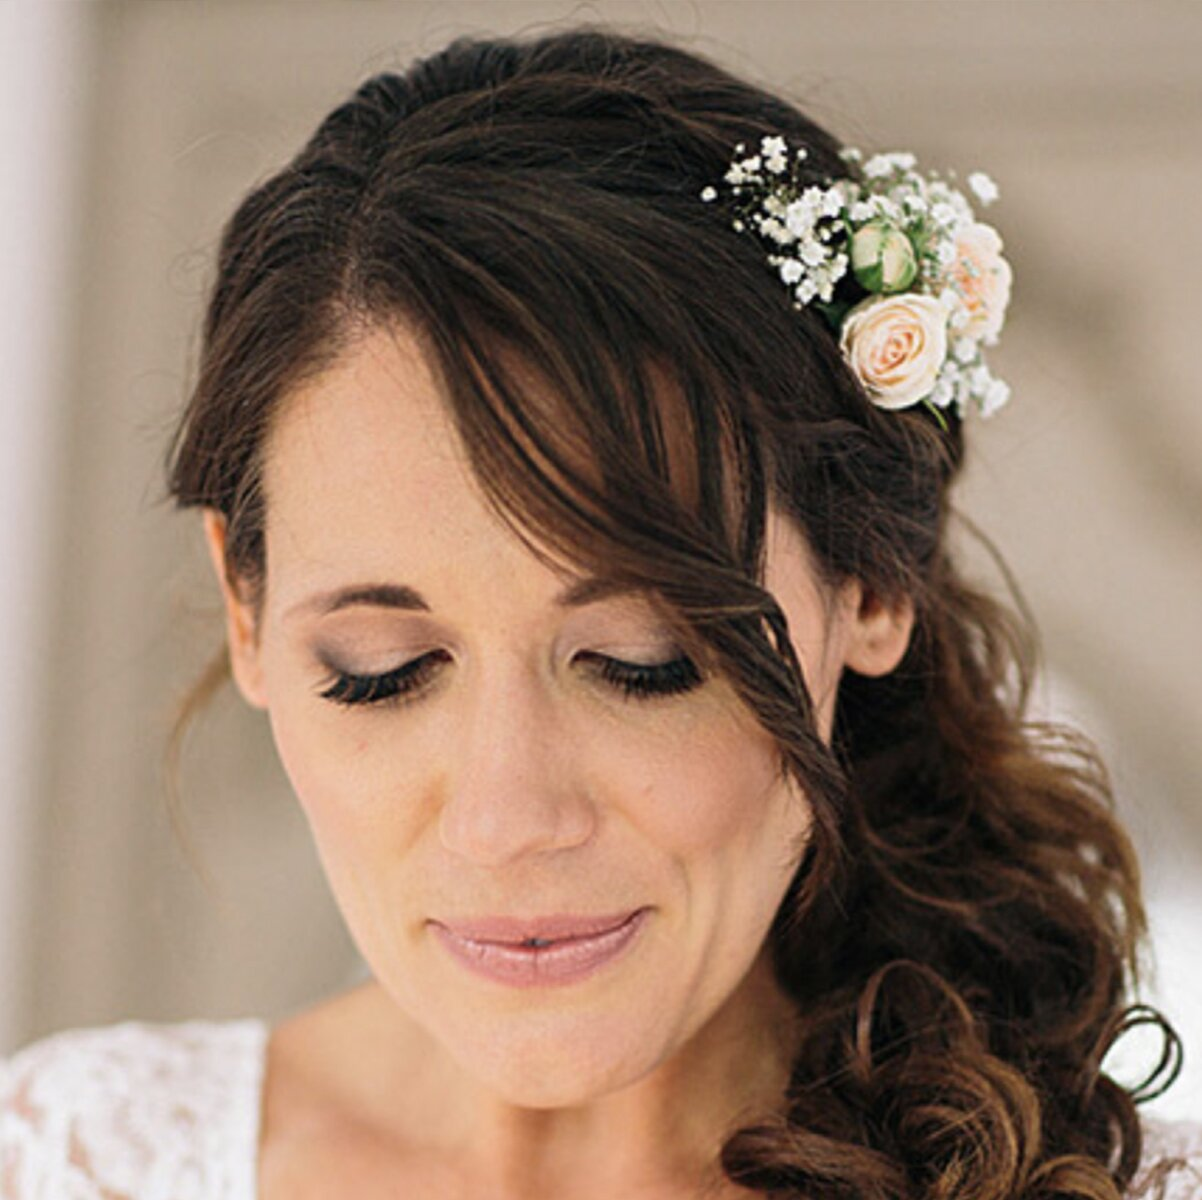 sydney-wedding-flowers-packages-prices-costs-cheap